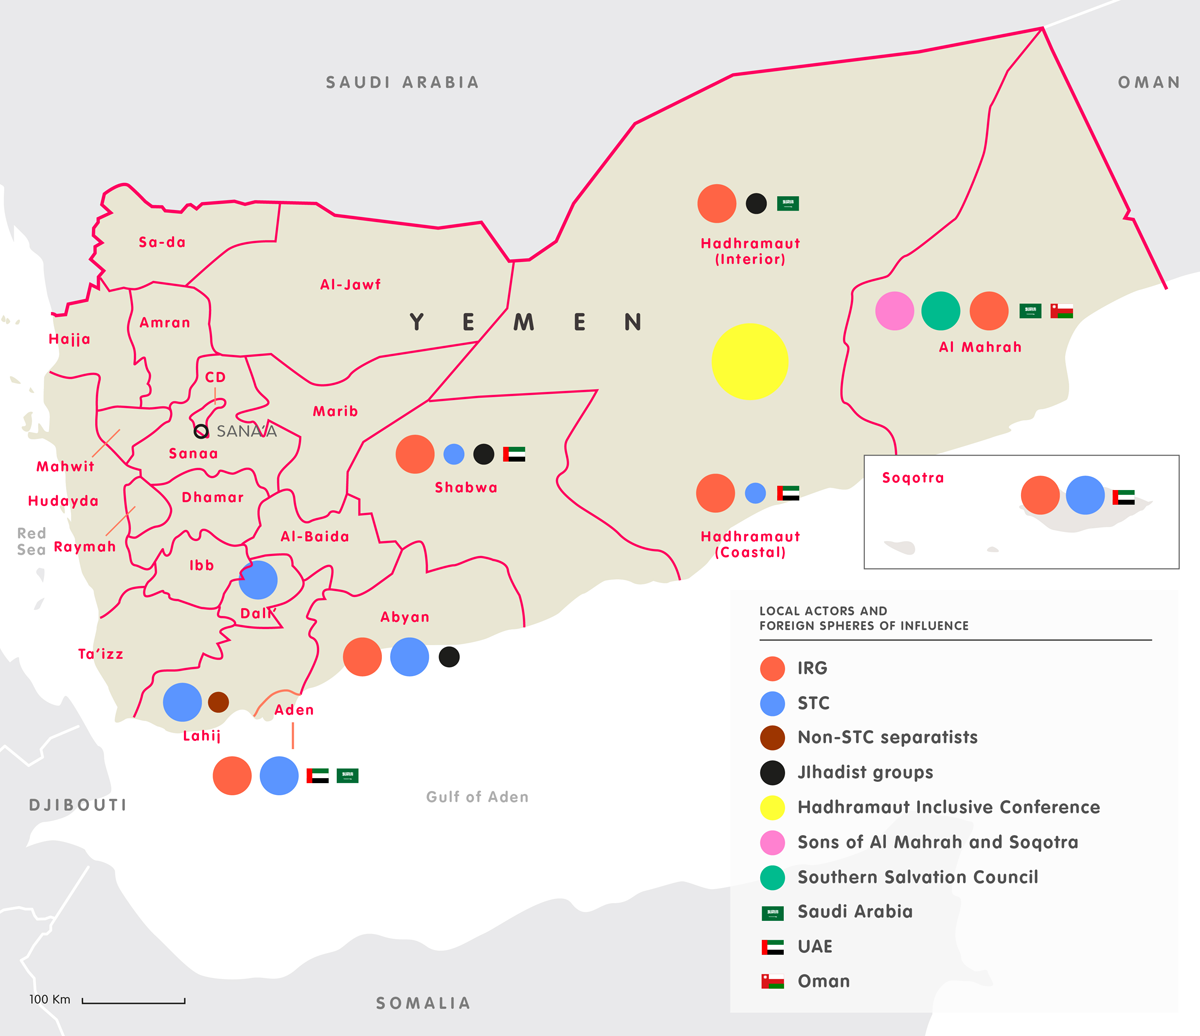 Map of local actors and foreign spheres of influence in Yemen